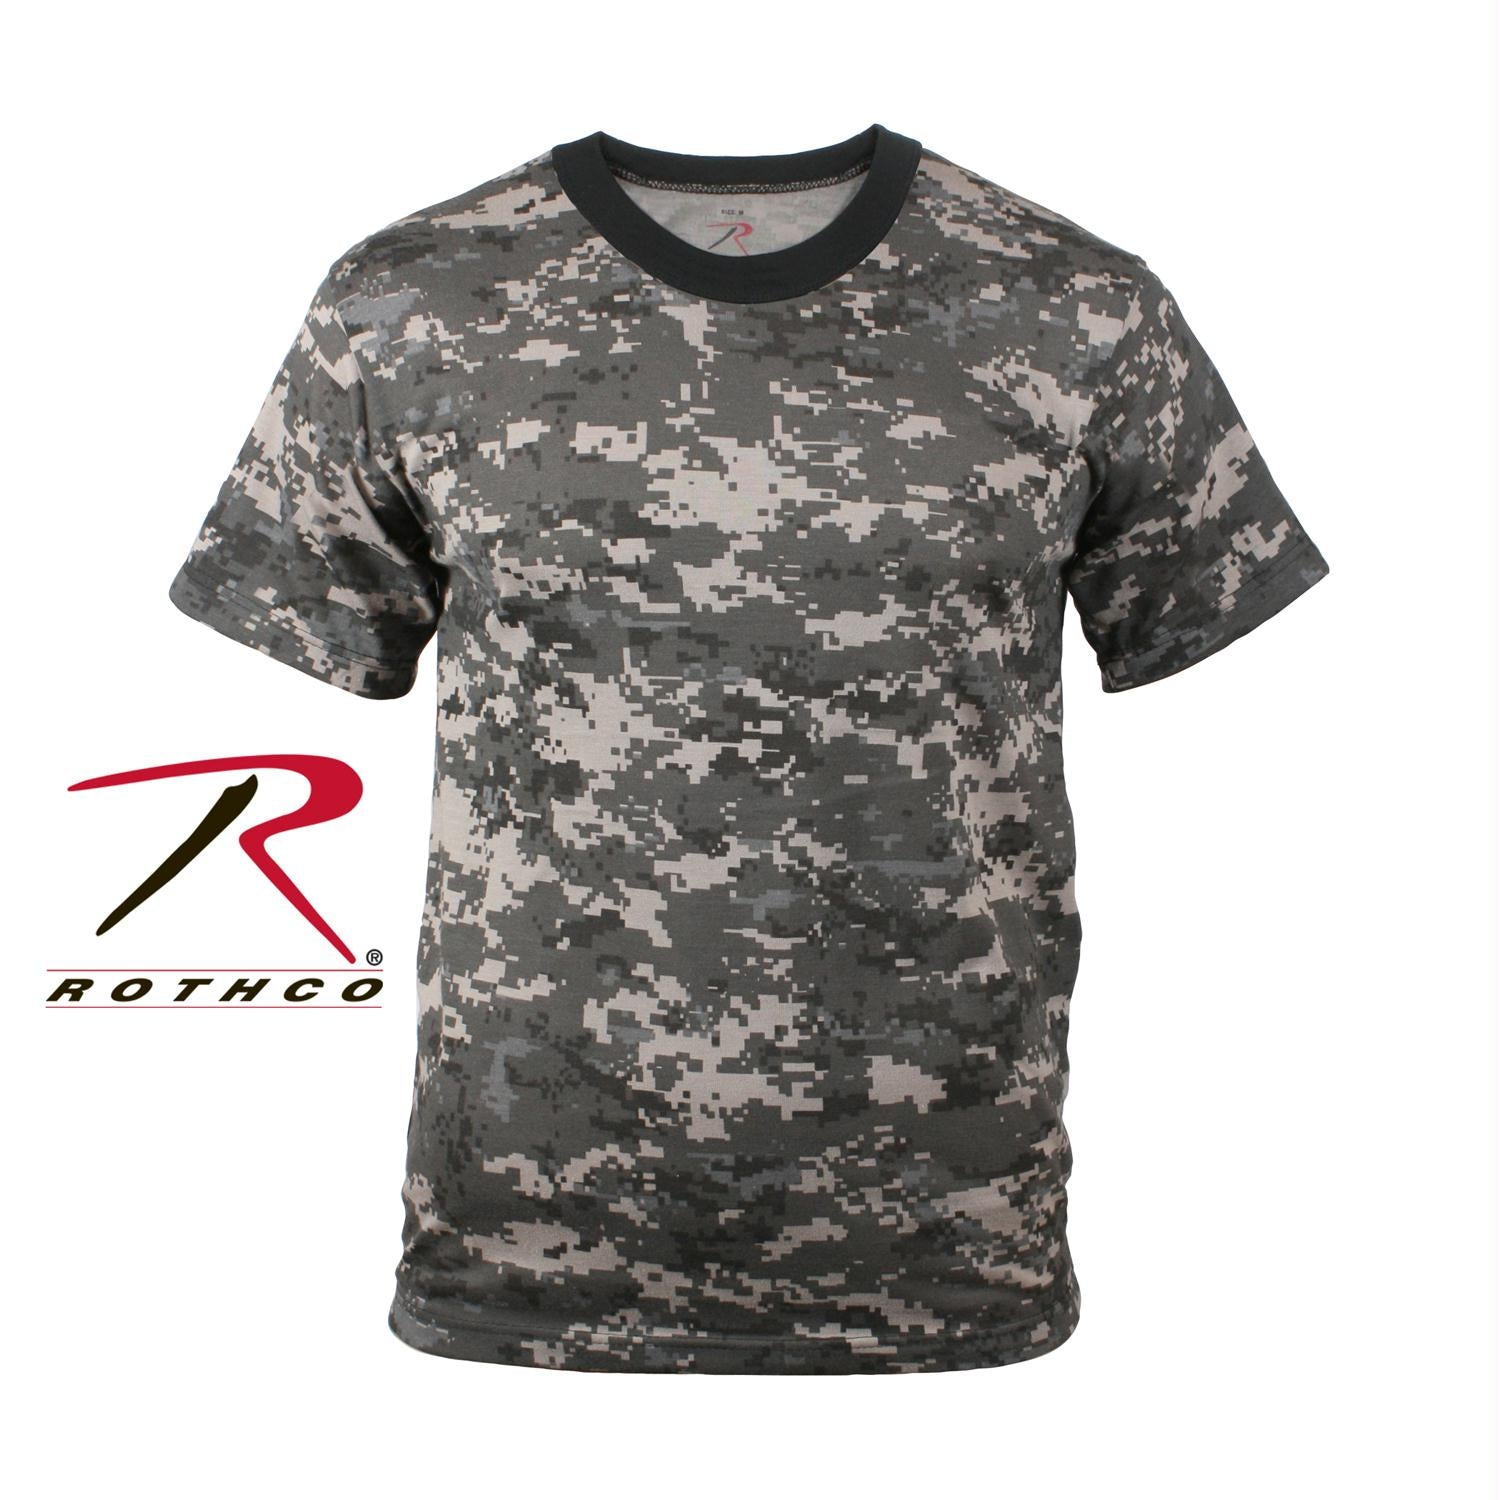 Rothco Digital Camo T-Shirt - Subdued Urban Digital Camo / L